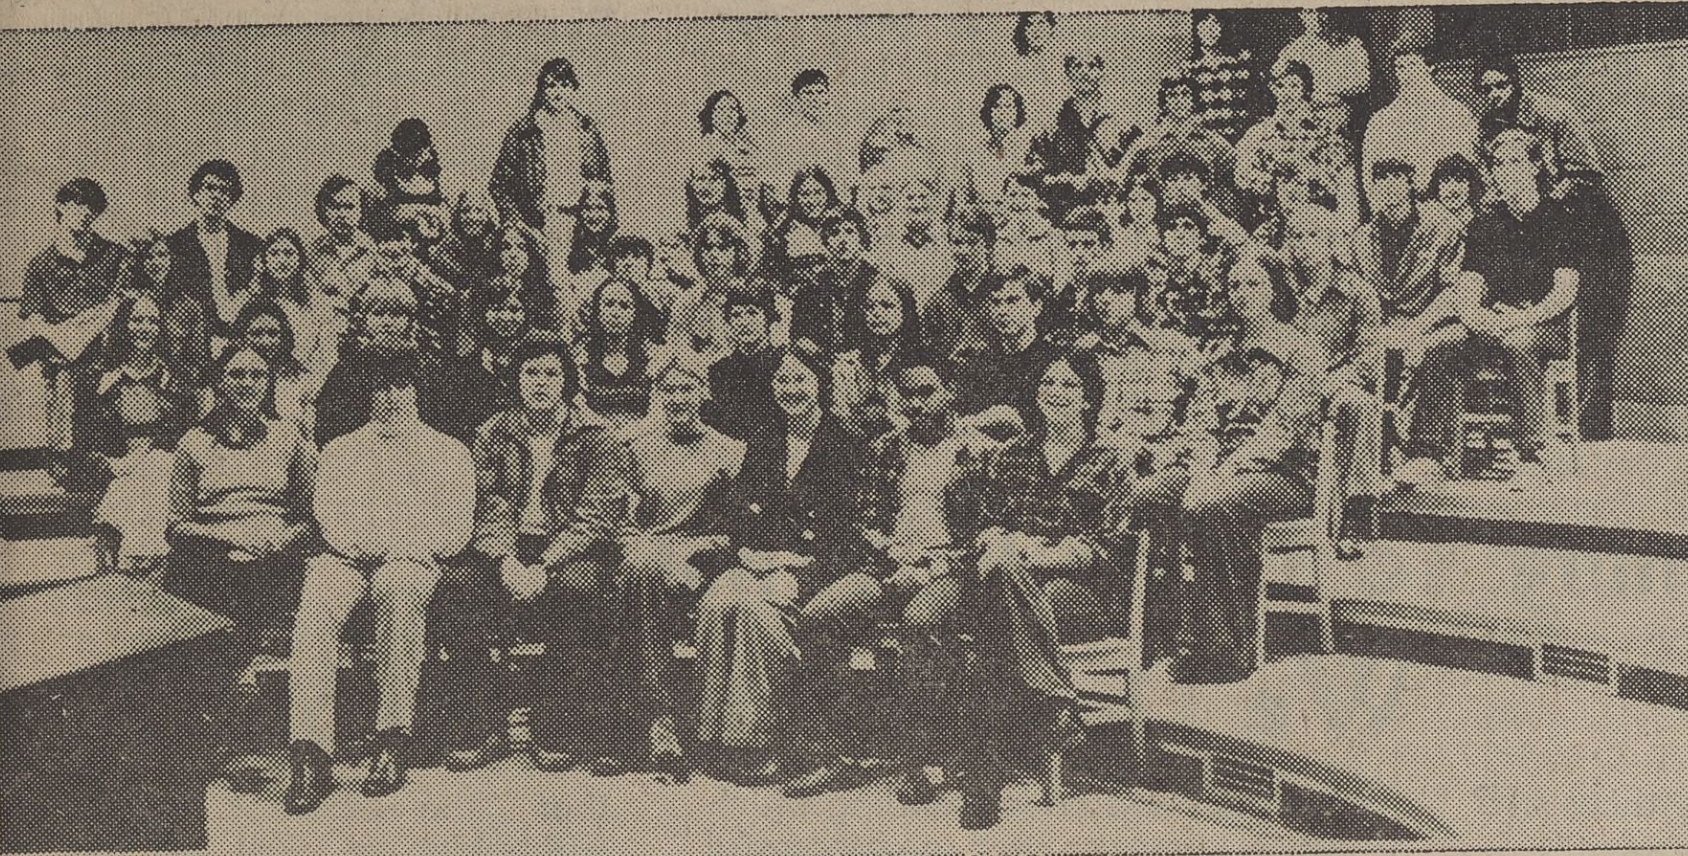 A group of band students sitting on risers.